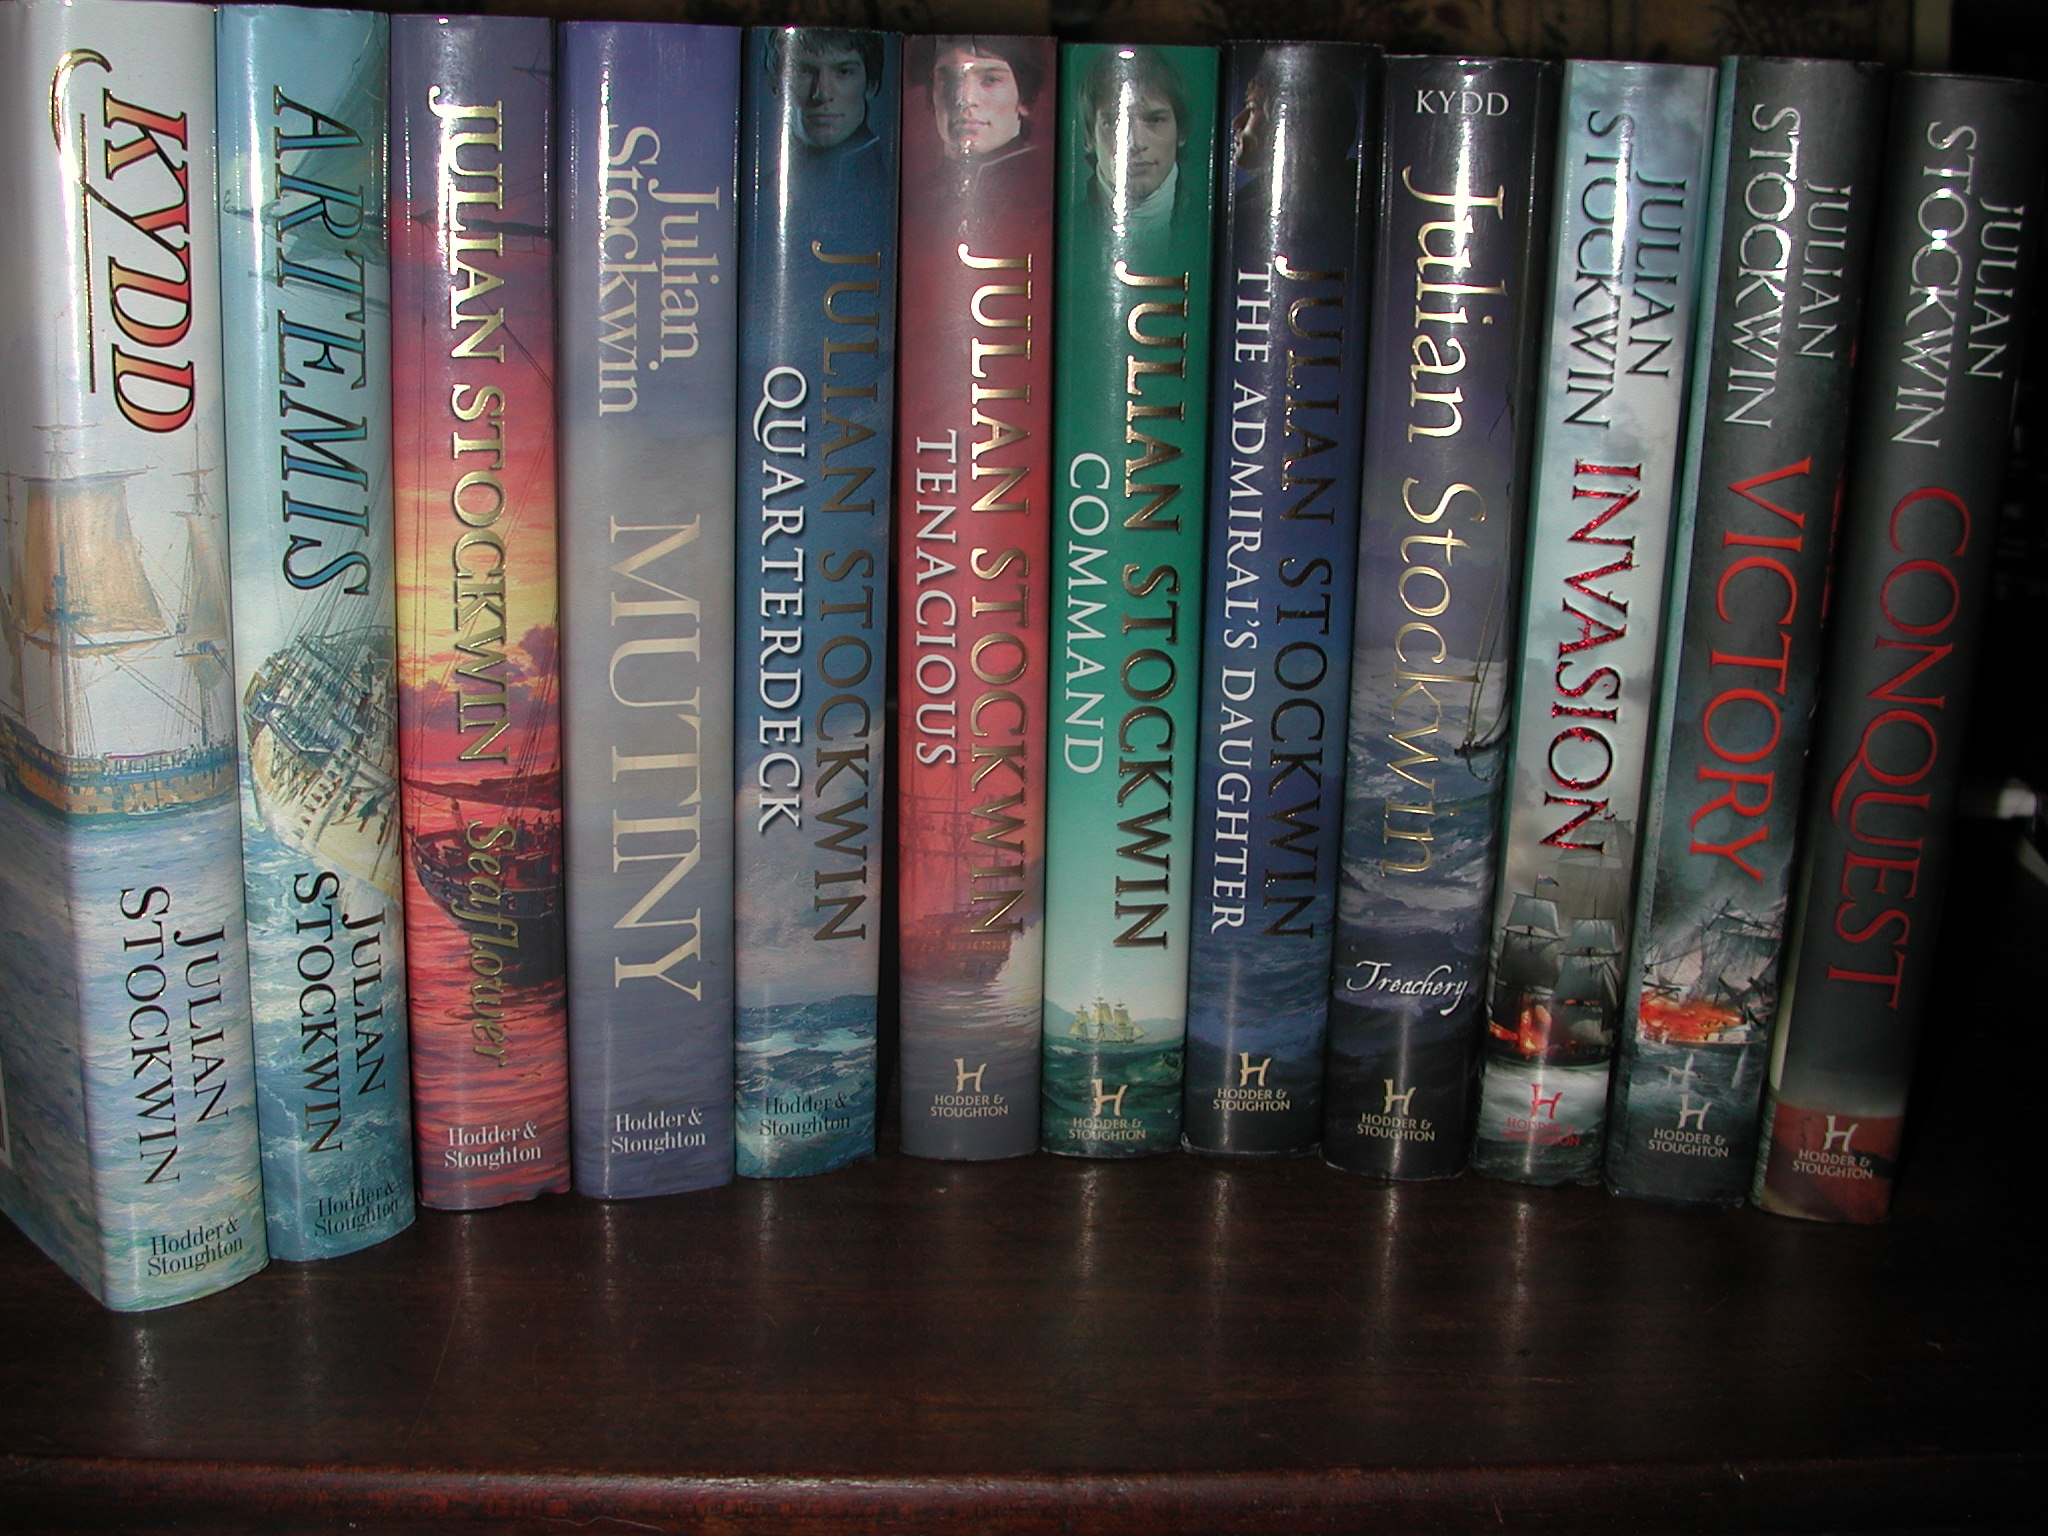 Stockwin Julian Set Of First 13 Books All Signed Editions Uk Novel With